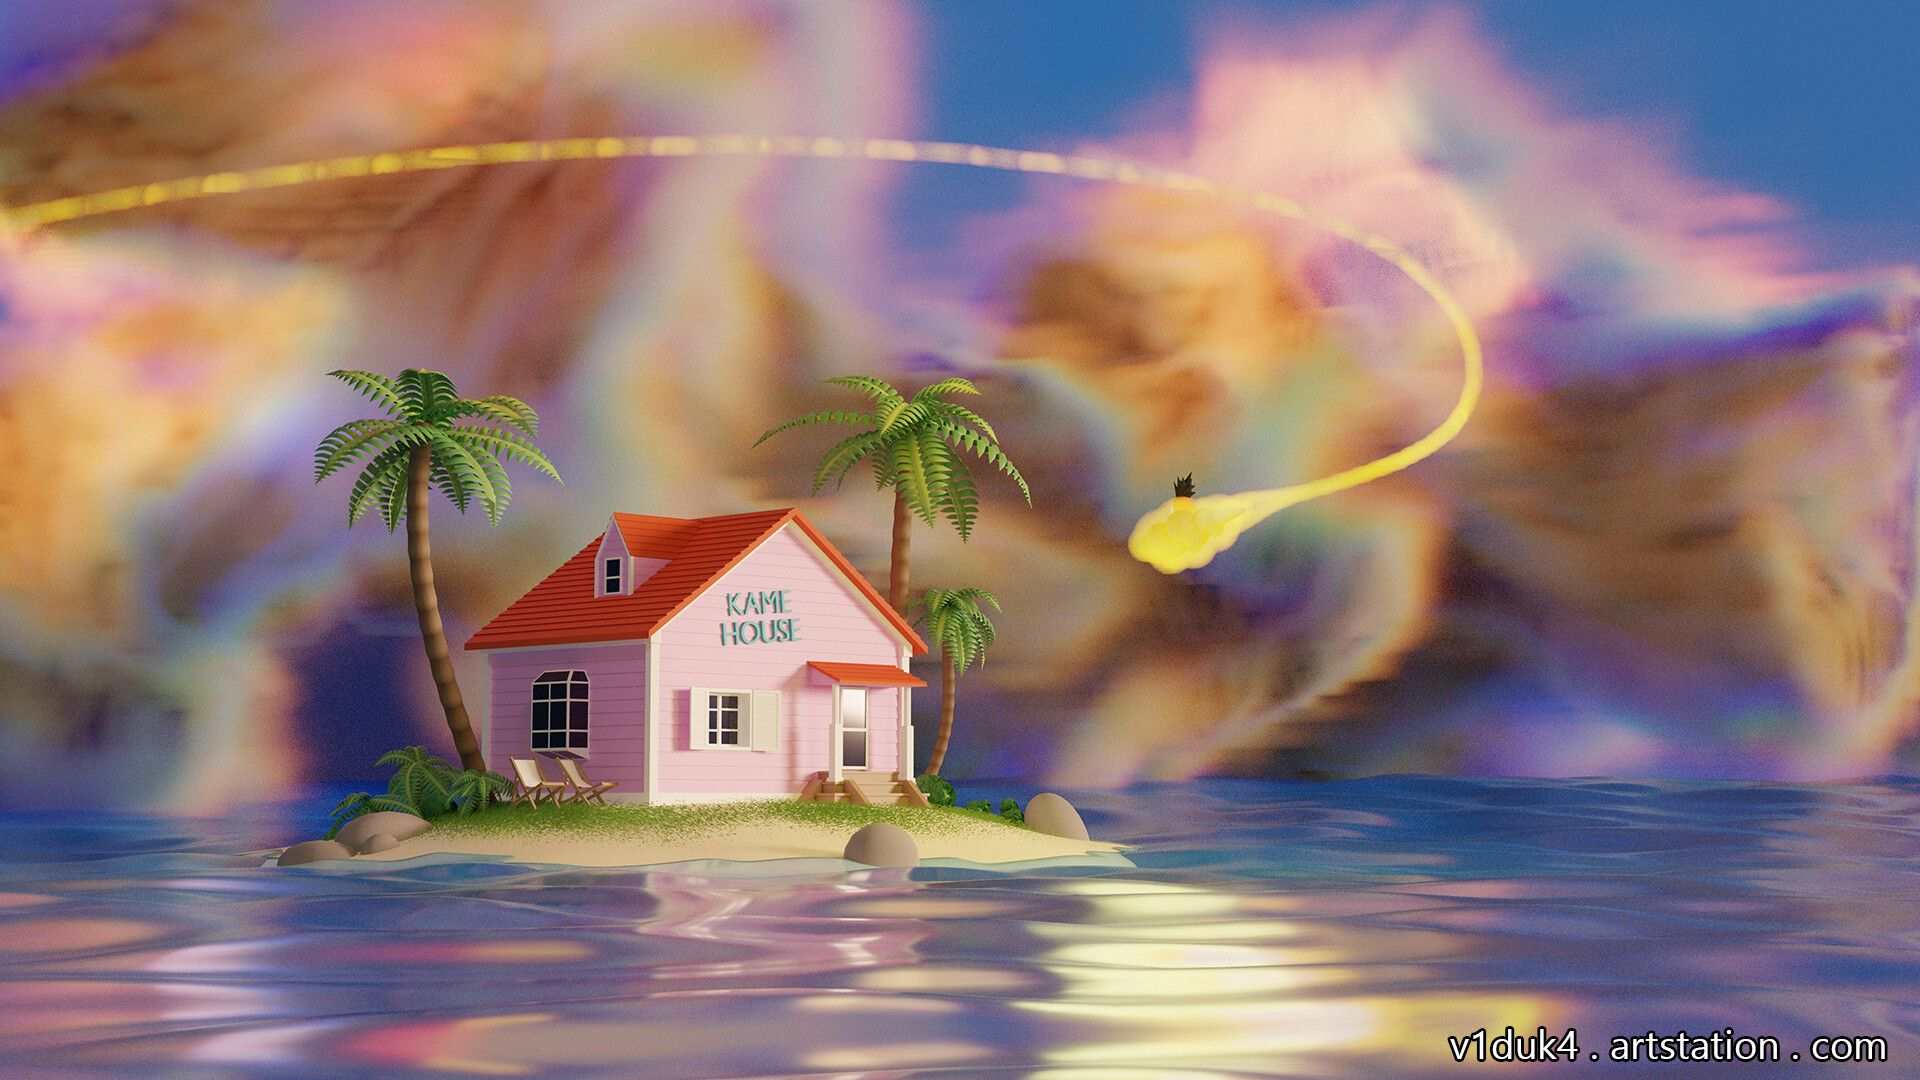 Kame House Wallpapers - Wallpaper Cave